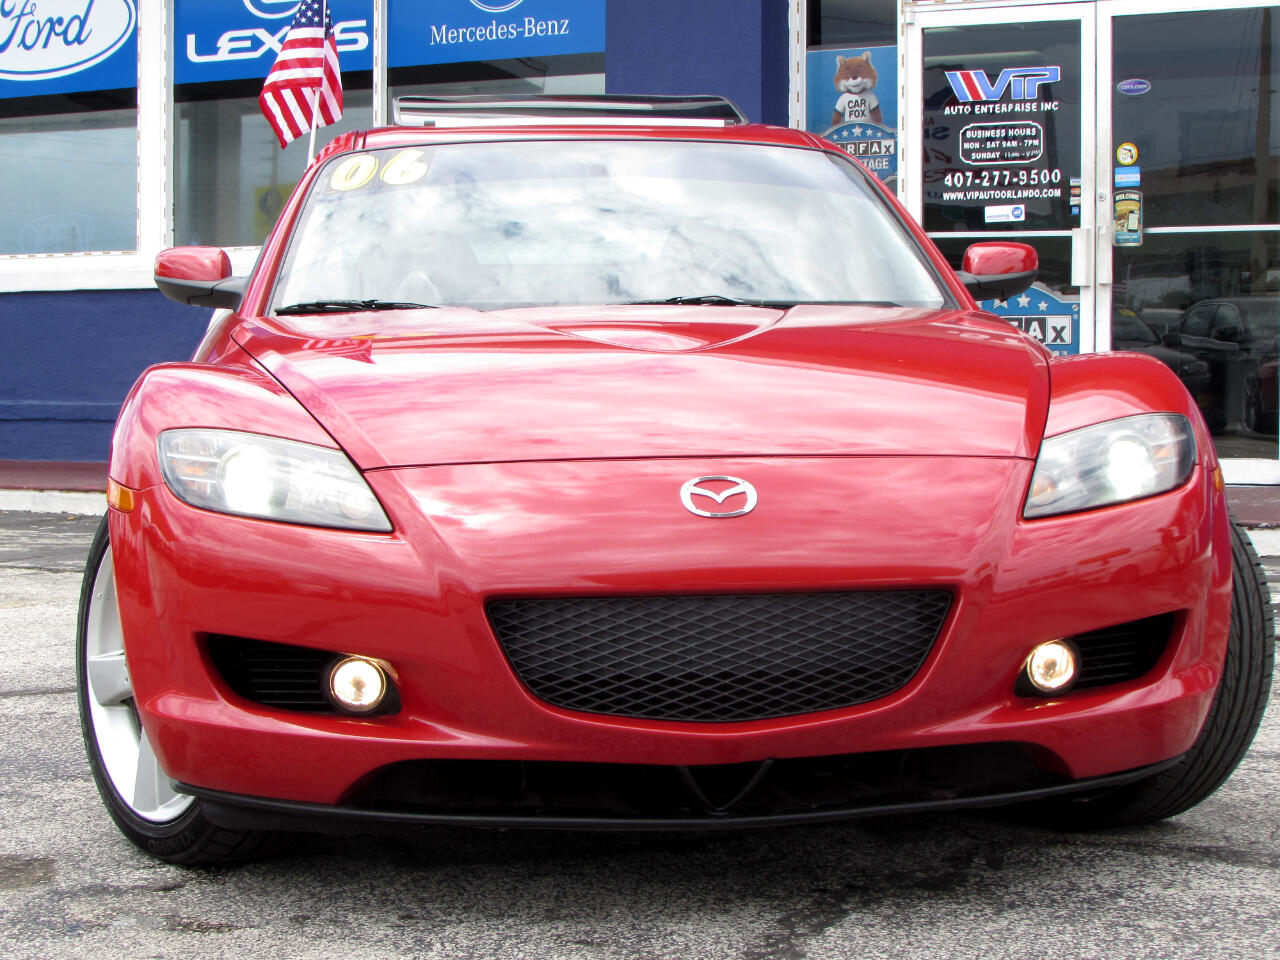 2006 Mazda RX-8 4dr Cpe 6-Spd Manual